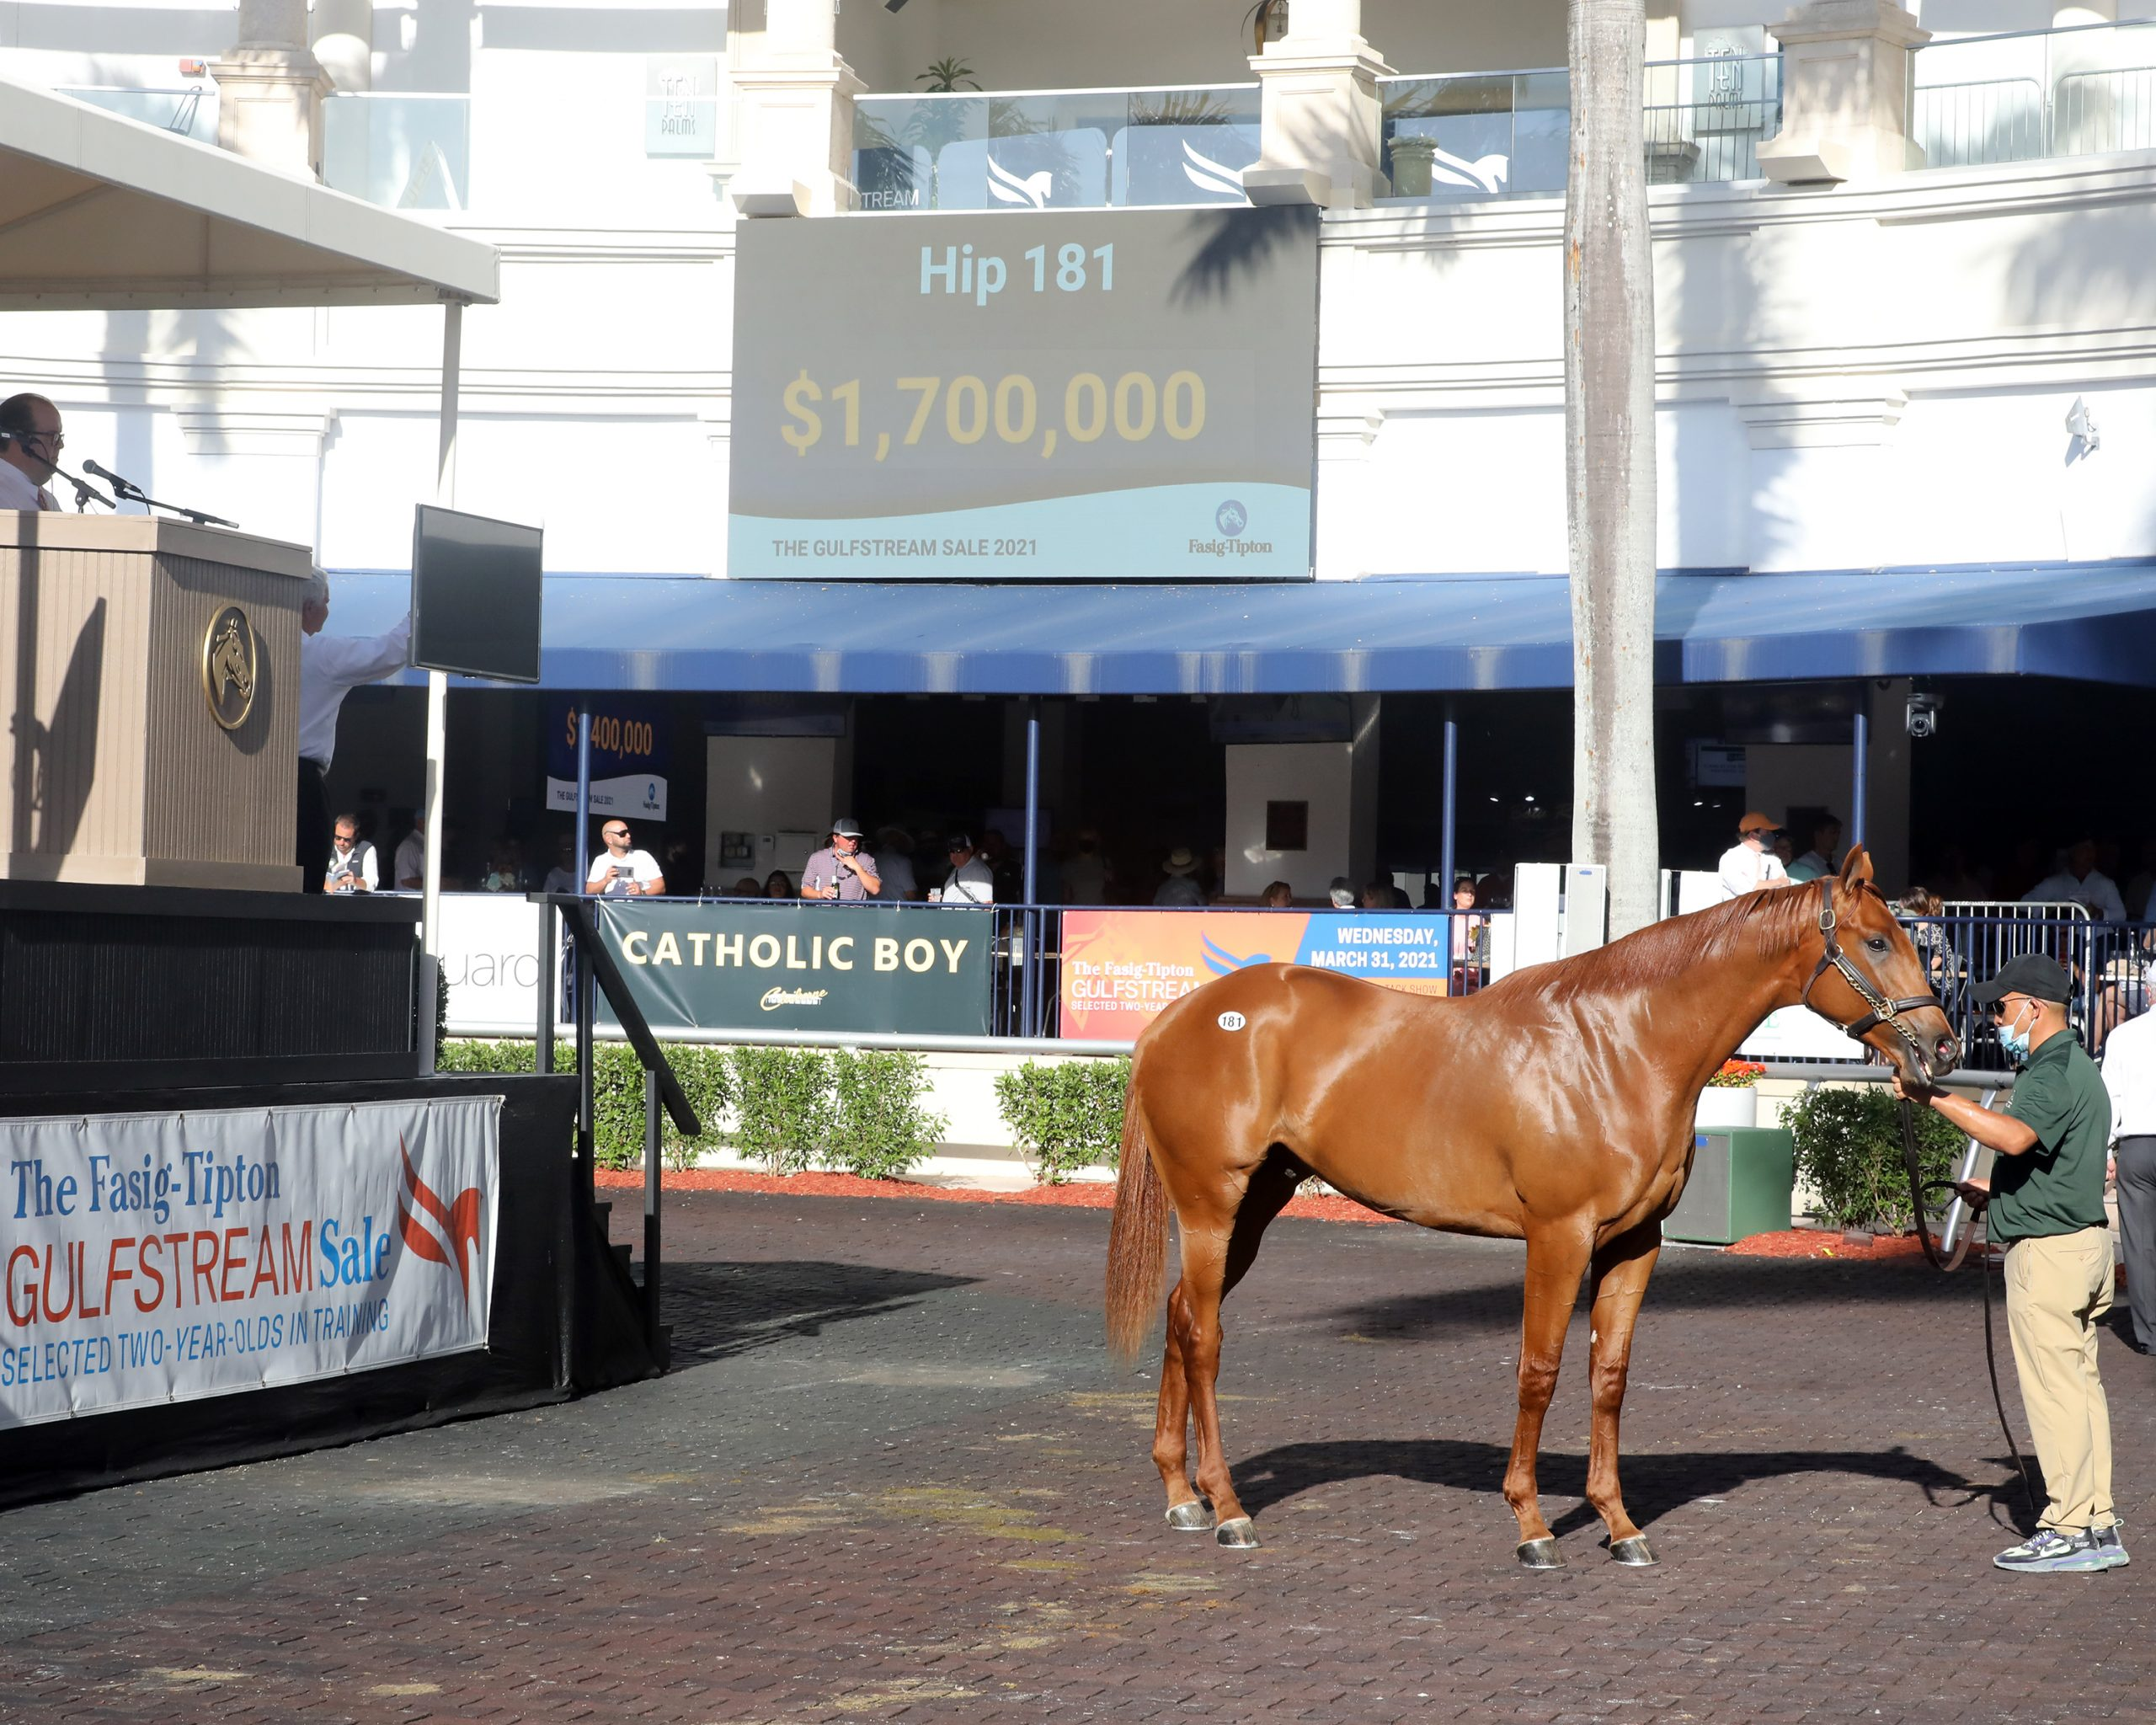 Hip 181 at the 2021 Fasig-Tipton Gulfstream Sale sold for $1,700,000.